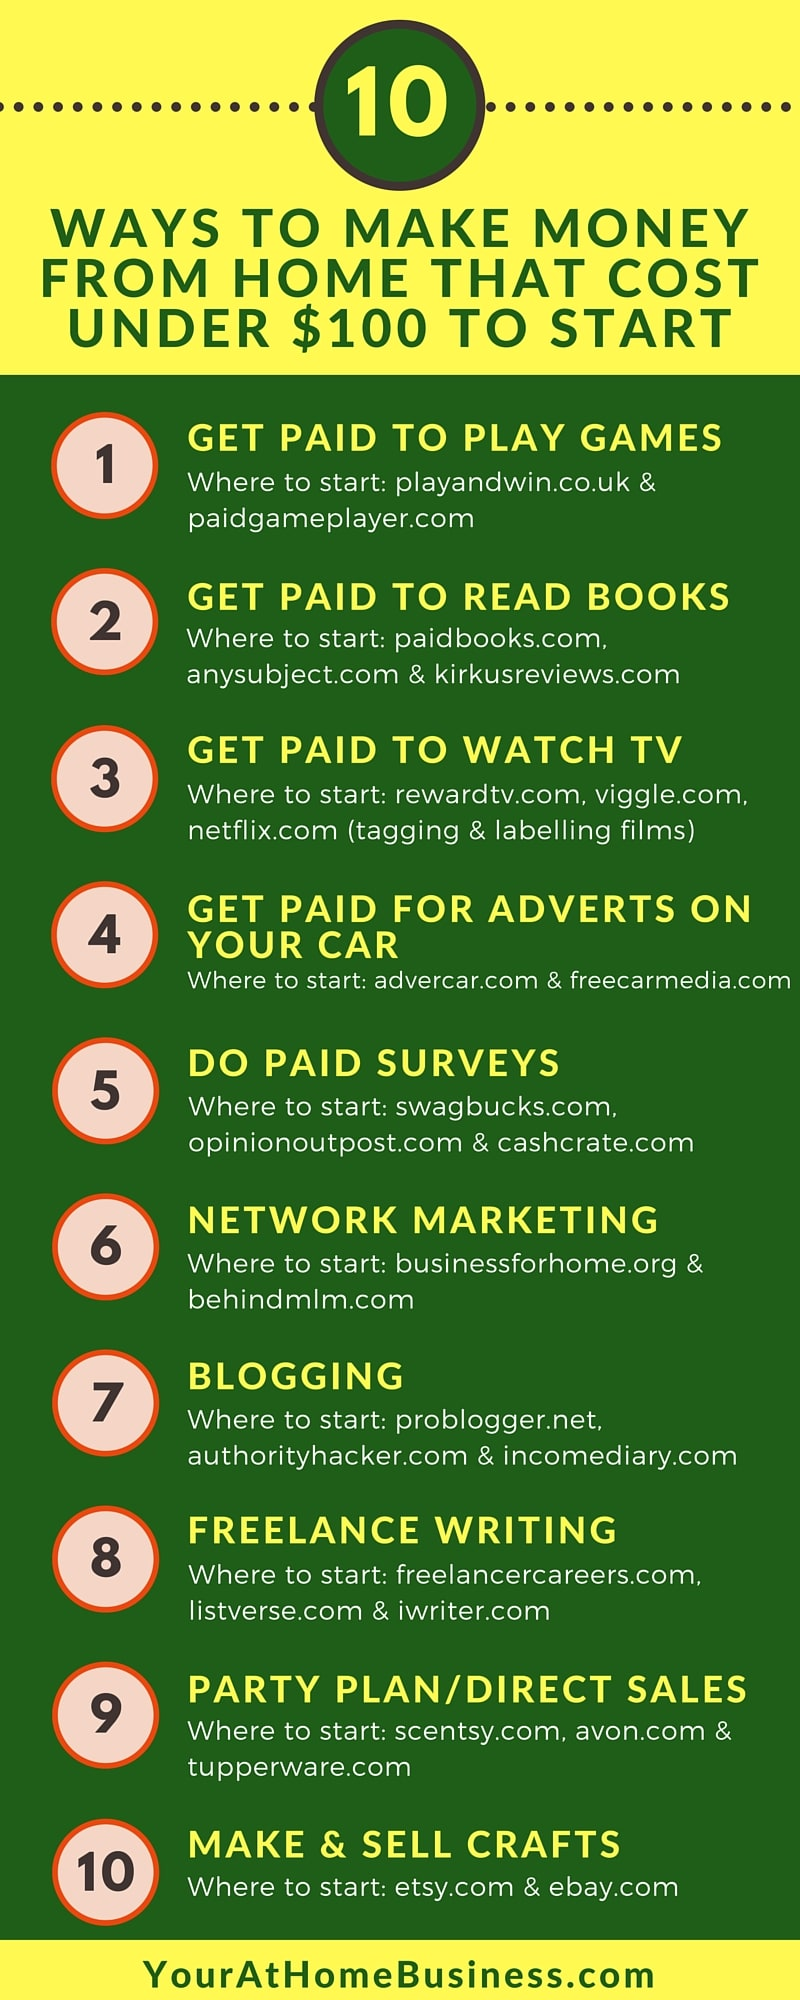 http://infographixdirectory.com/wp-content/uploads/2016/07/Ways-To-Make-Money-From-Home-That-Cost-Under-100-Dollars.jpg